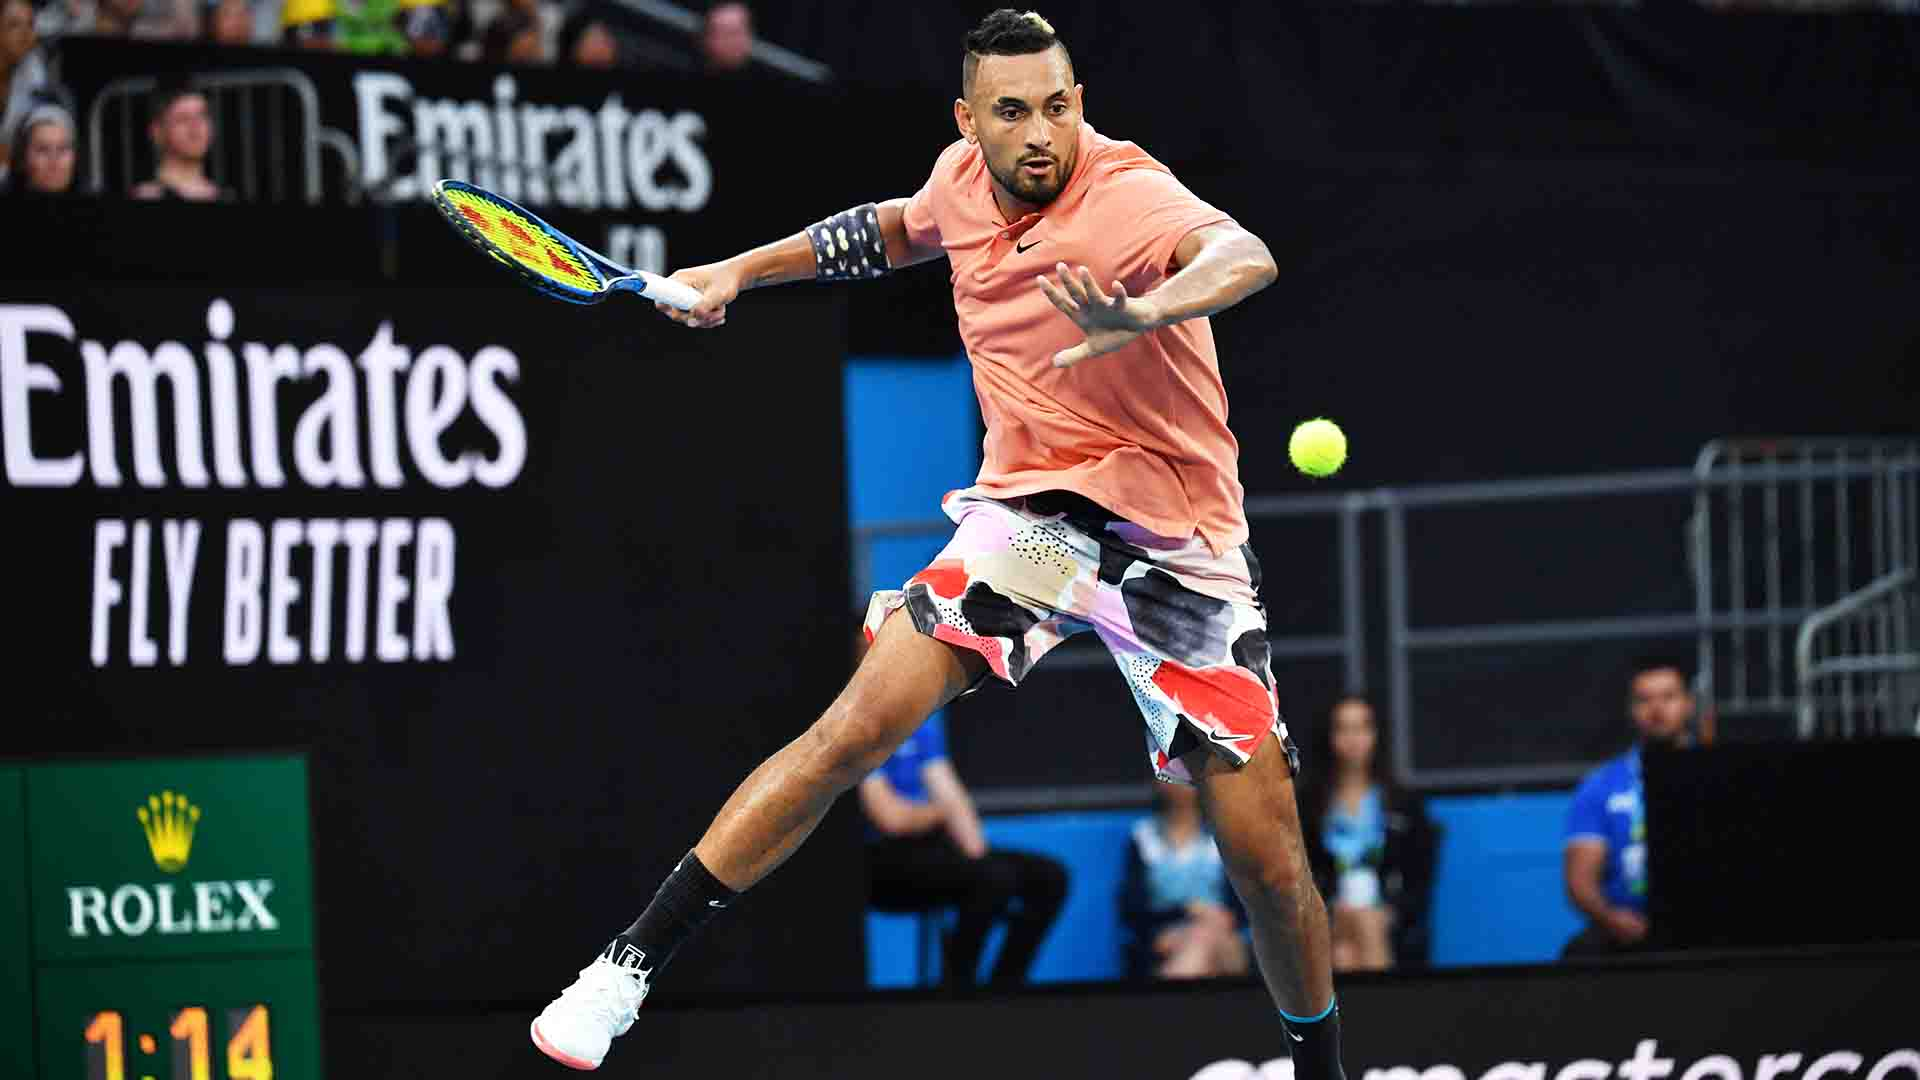 Nick Kyrgios owns a 3-0 tie-break record at this year's Australian Open.